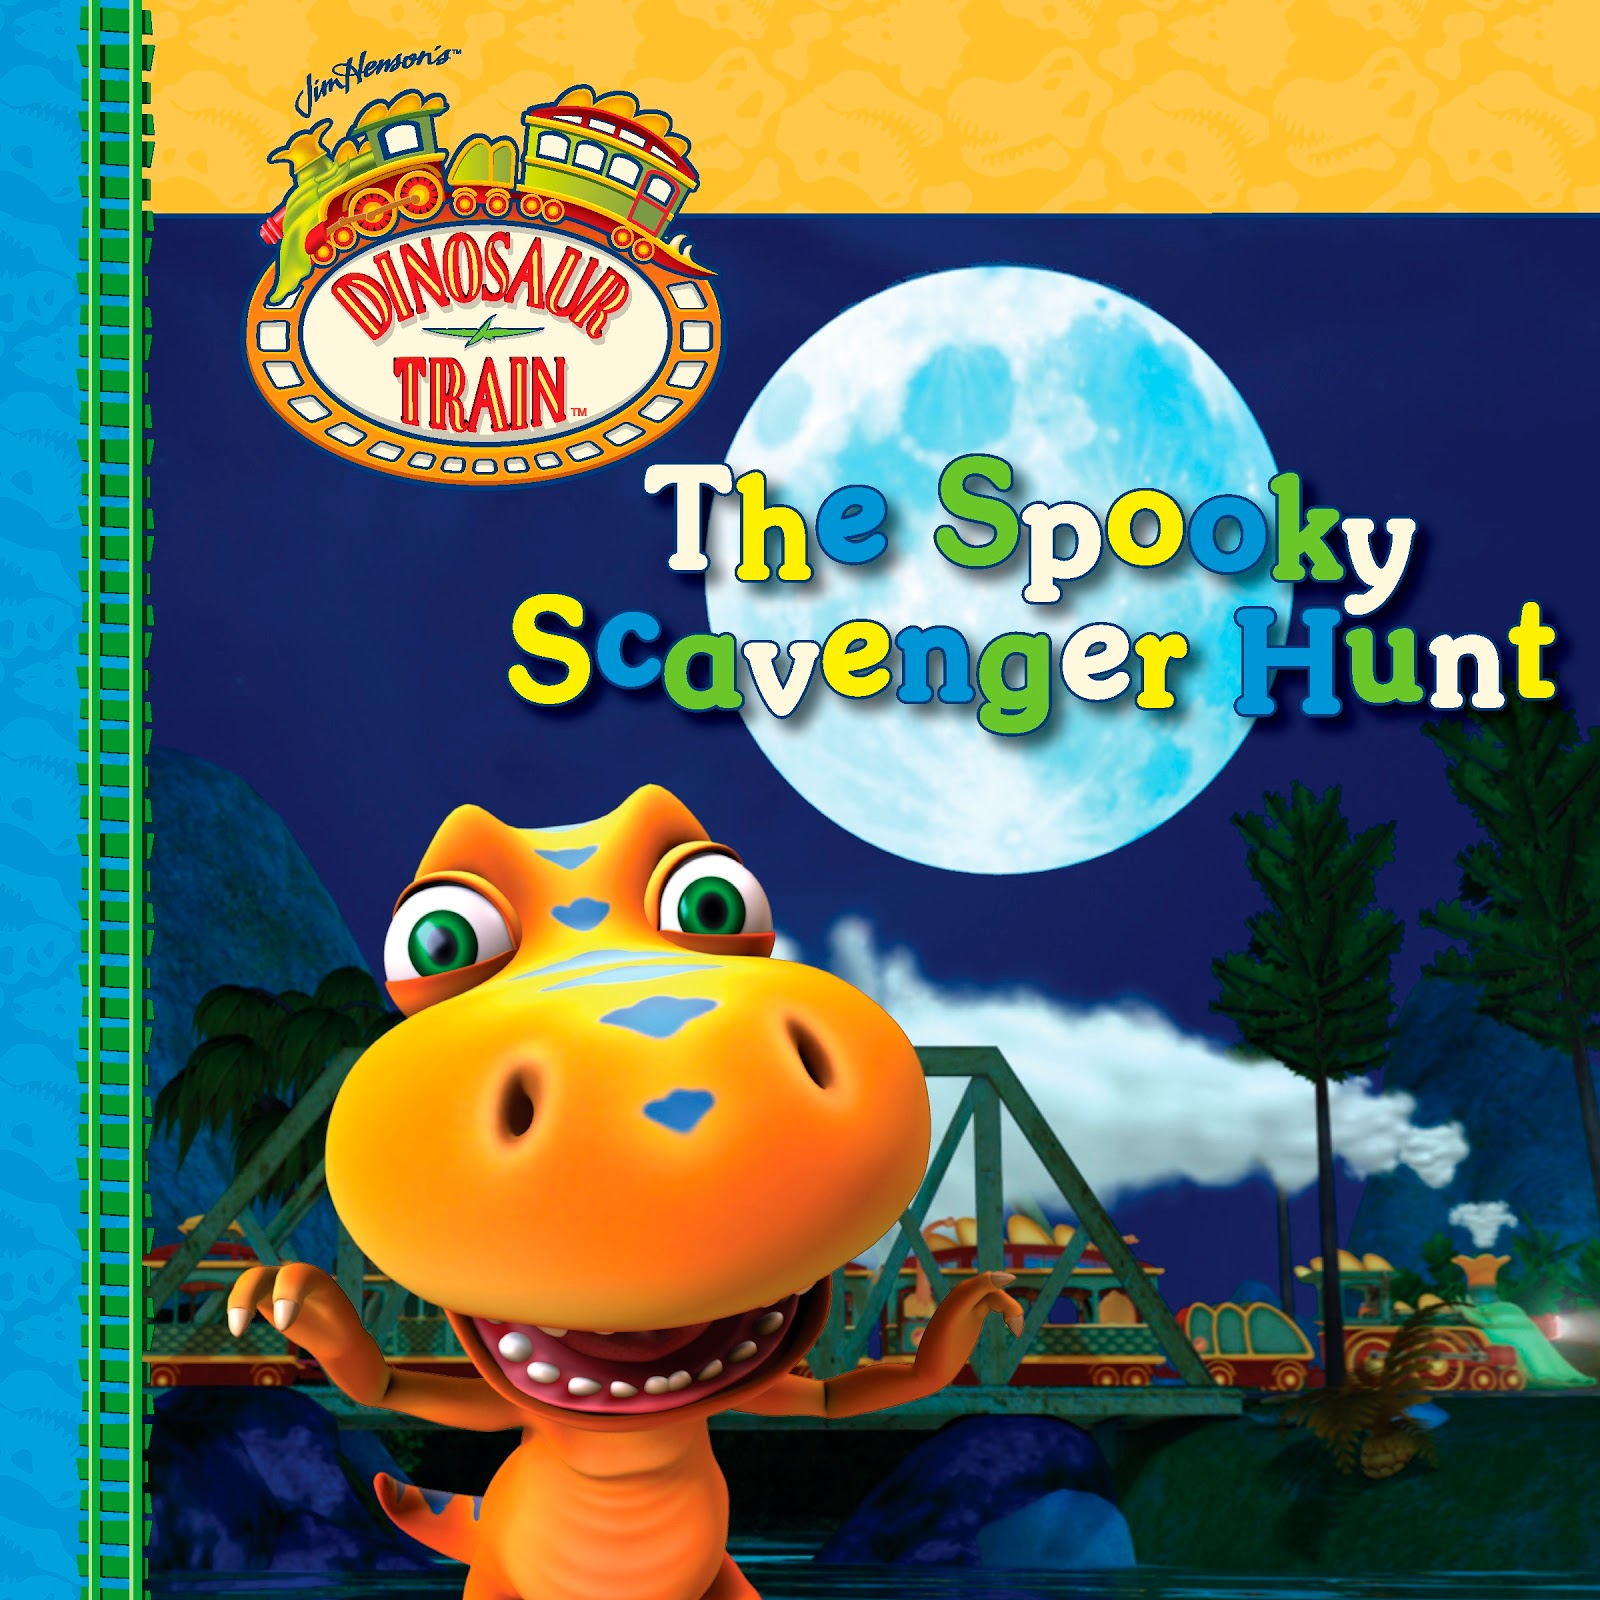 4351765c09a Dinosaur Train is pulling into the station with some great new costumes for  your kiddos! With a costume in the Buddy or Tiny style, your child can be  his ...